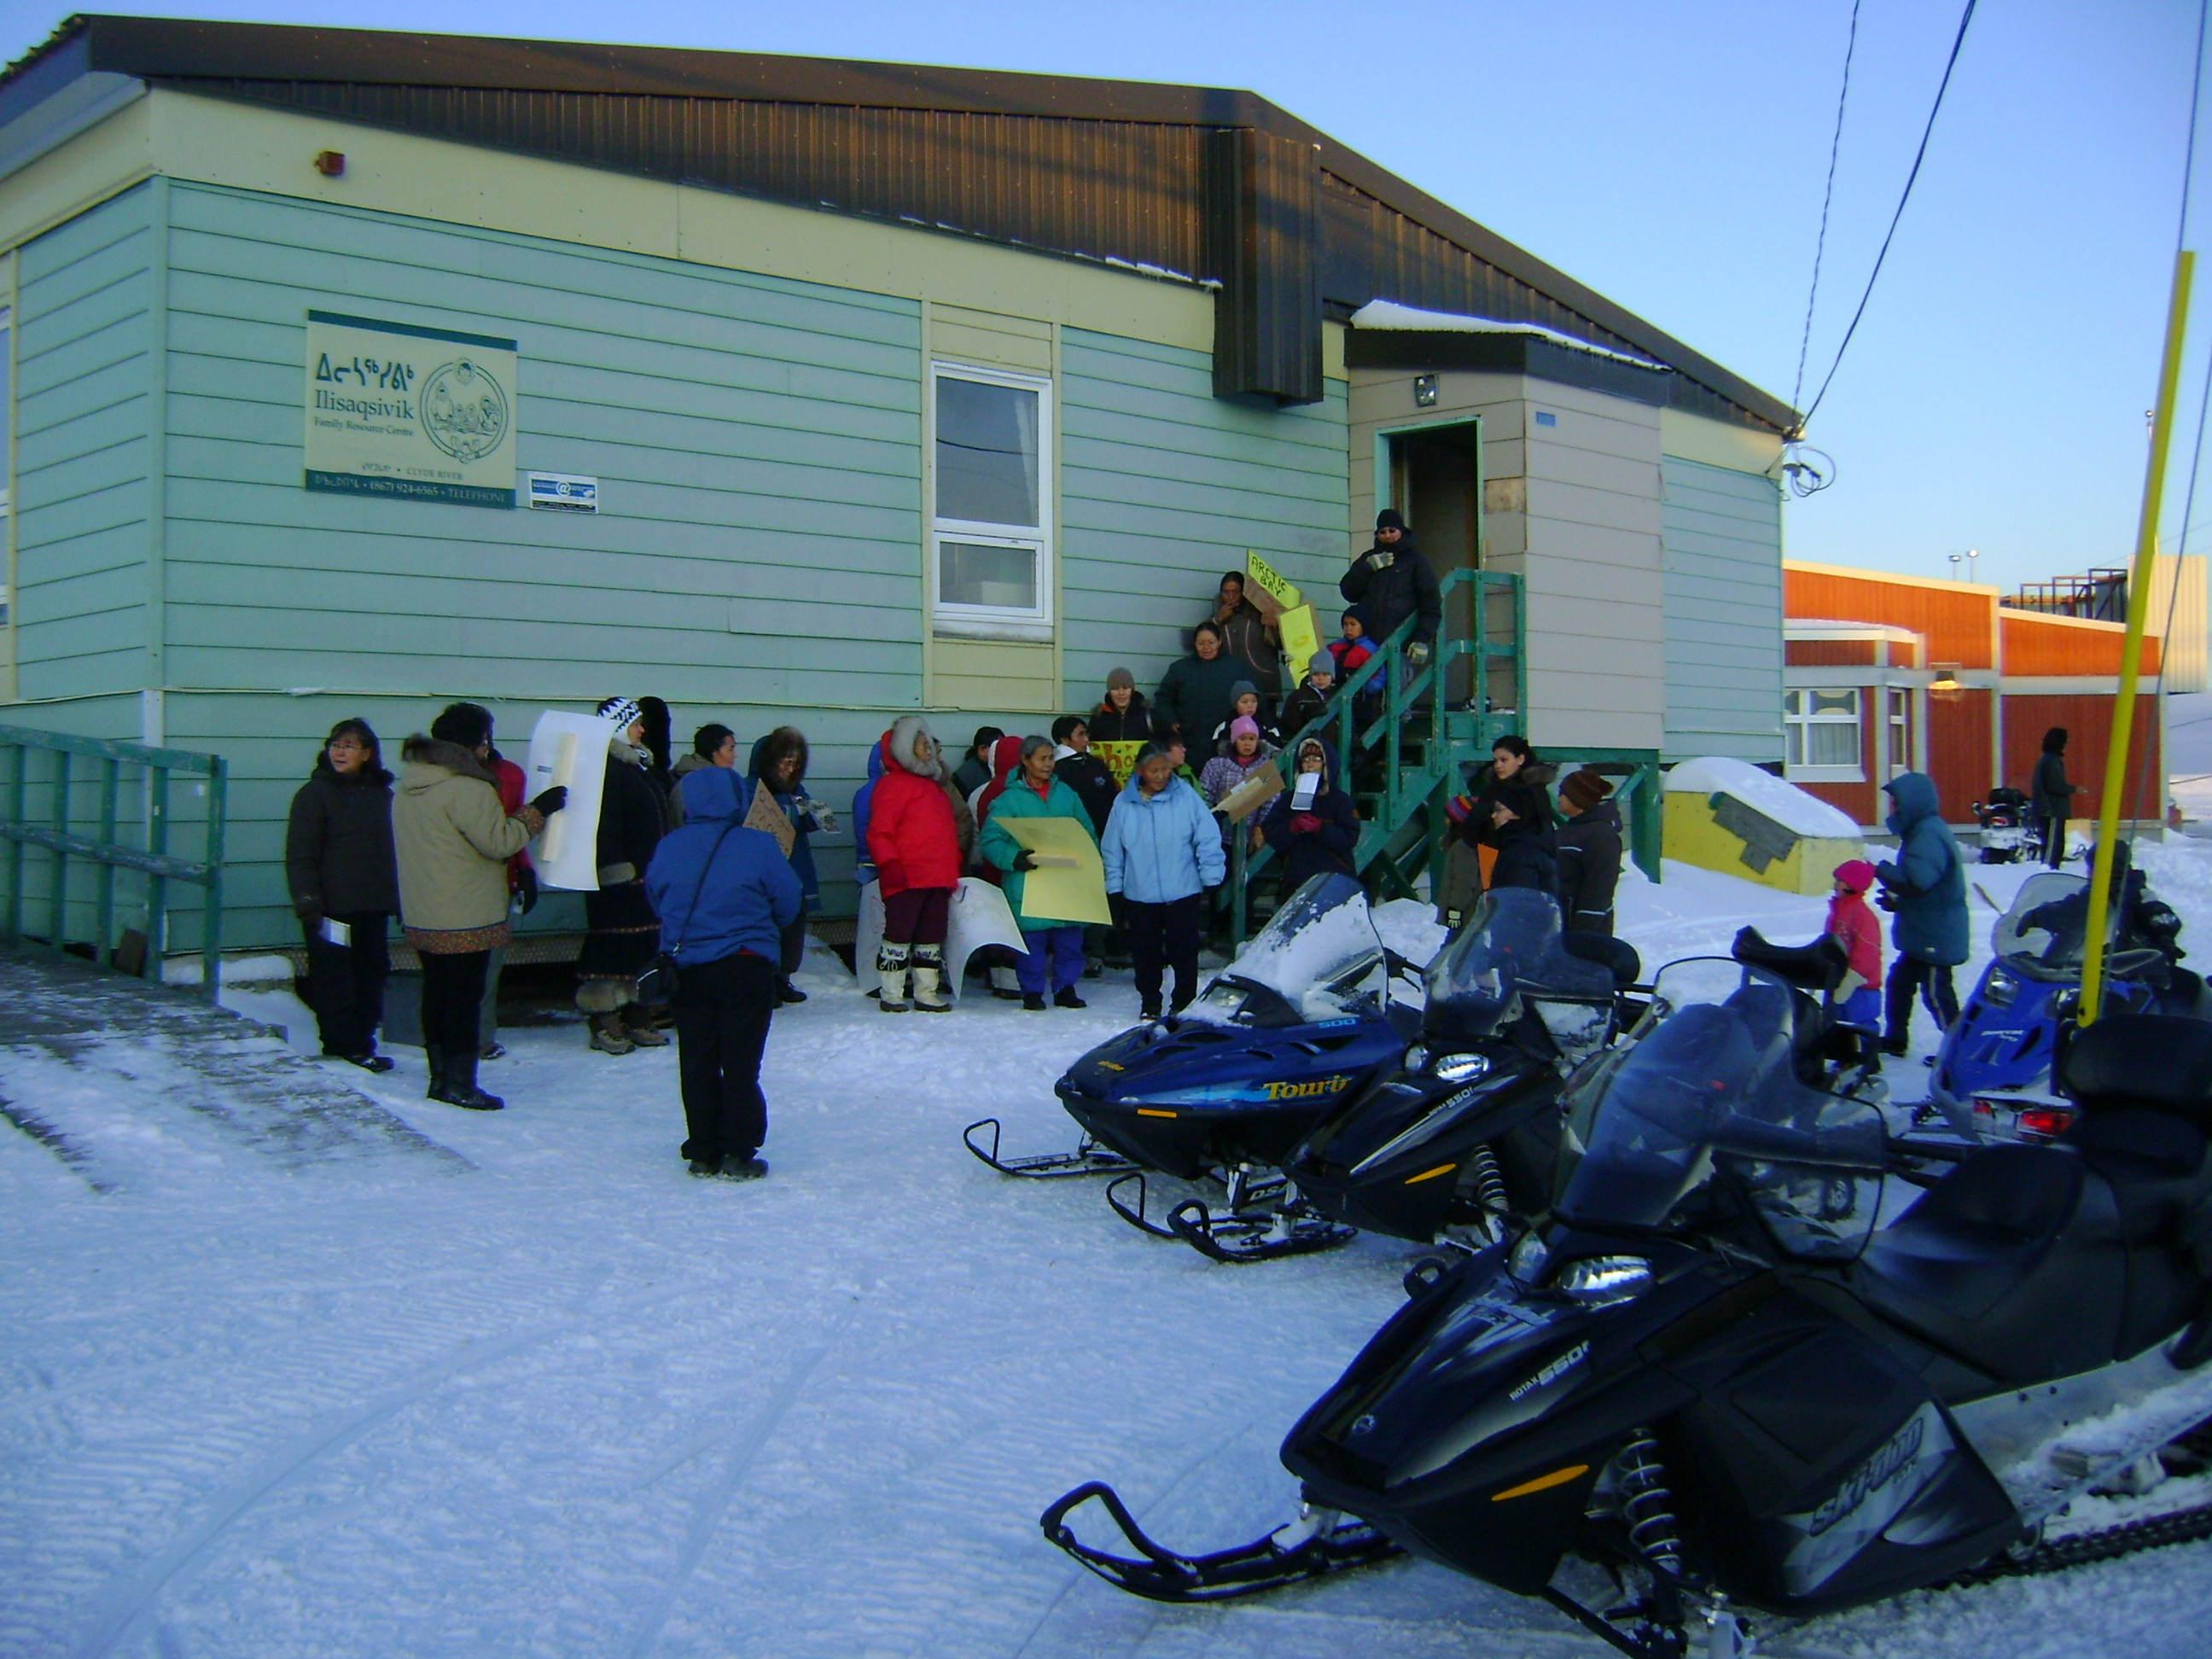 Ilisaqsivik Society, Wellness Centre, Clyde River, NU